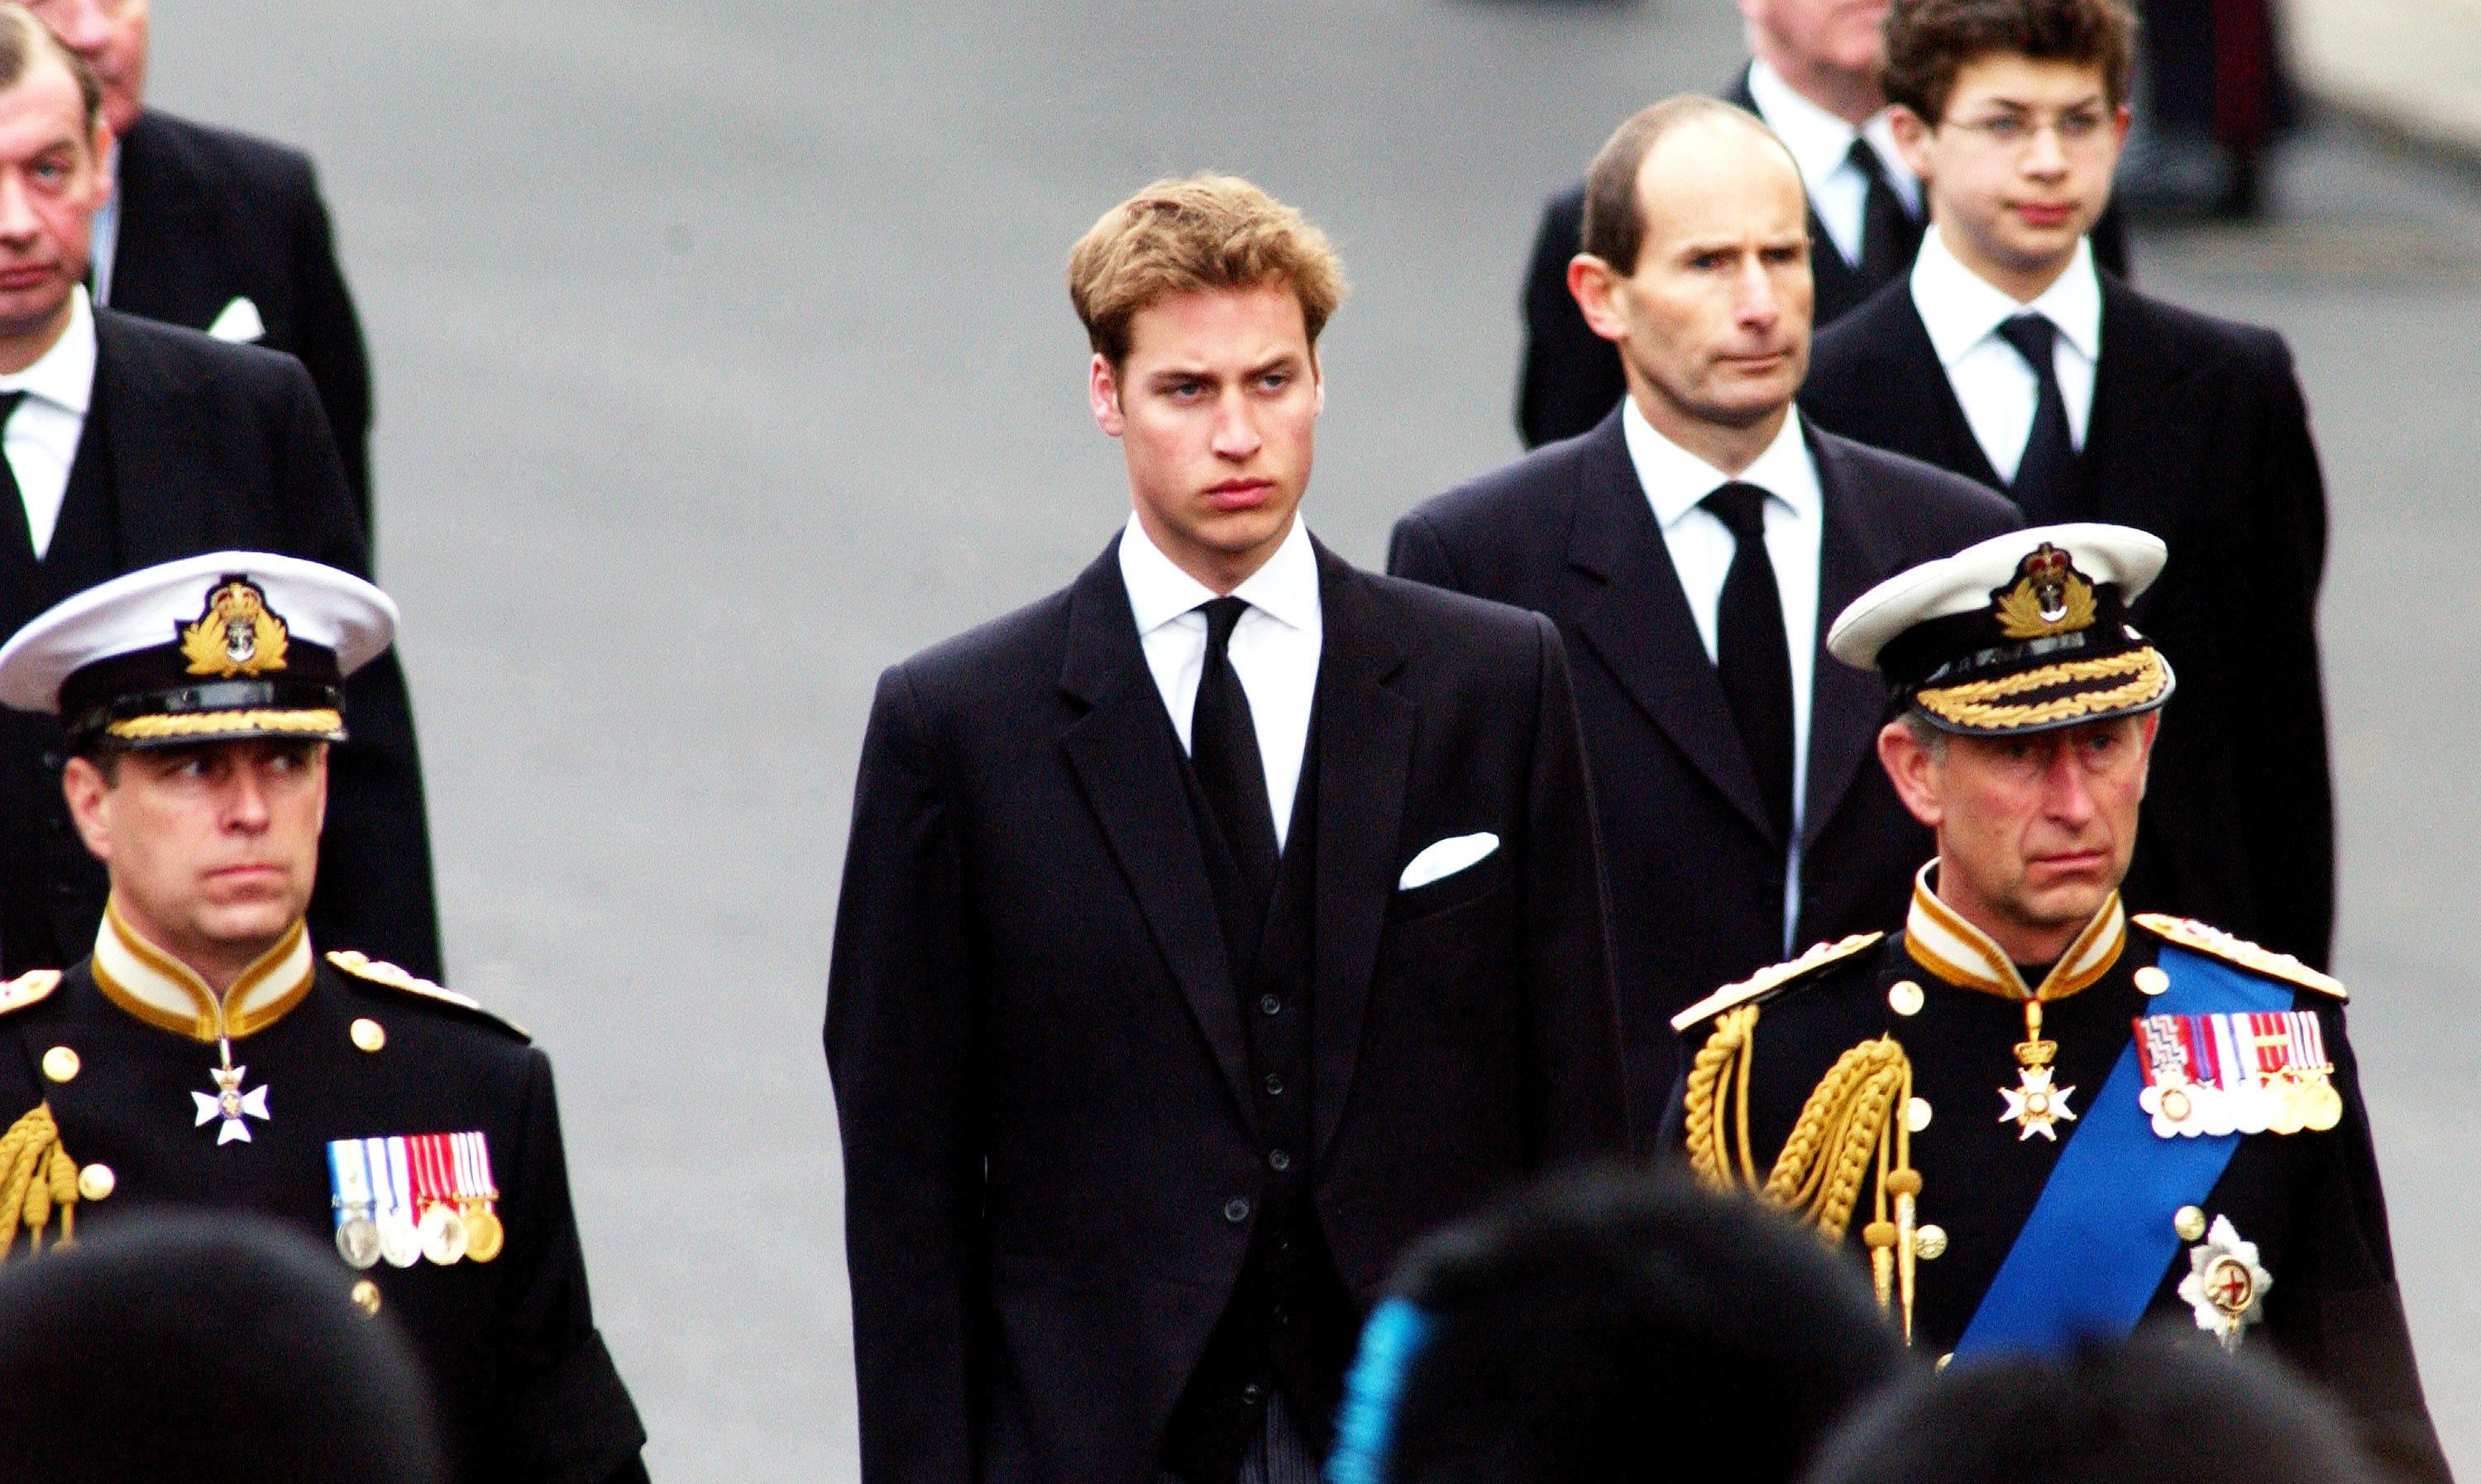 Britain's Prince Charles (R) Prince Andrew (L) and Prince William (C) walk behind the Gun Carriage bearing the coffin of the Queen Mother April 9, 2002 as it makes its way to Westminster Abbey during her state funeral April 9, 2002 in London.